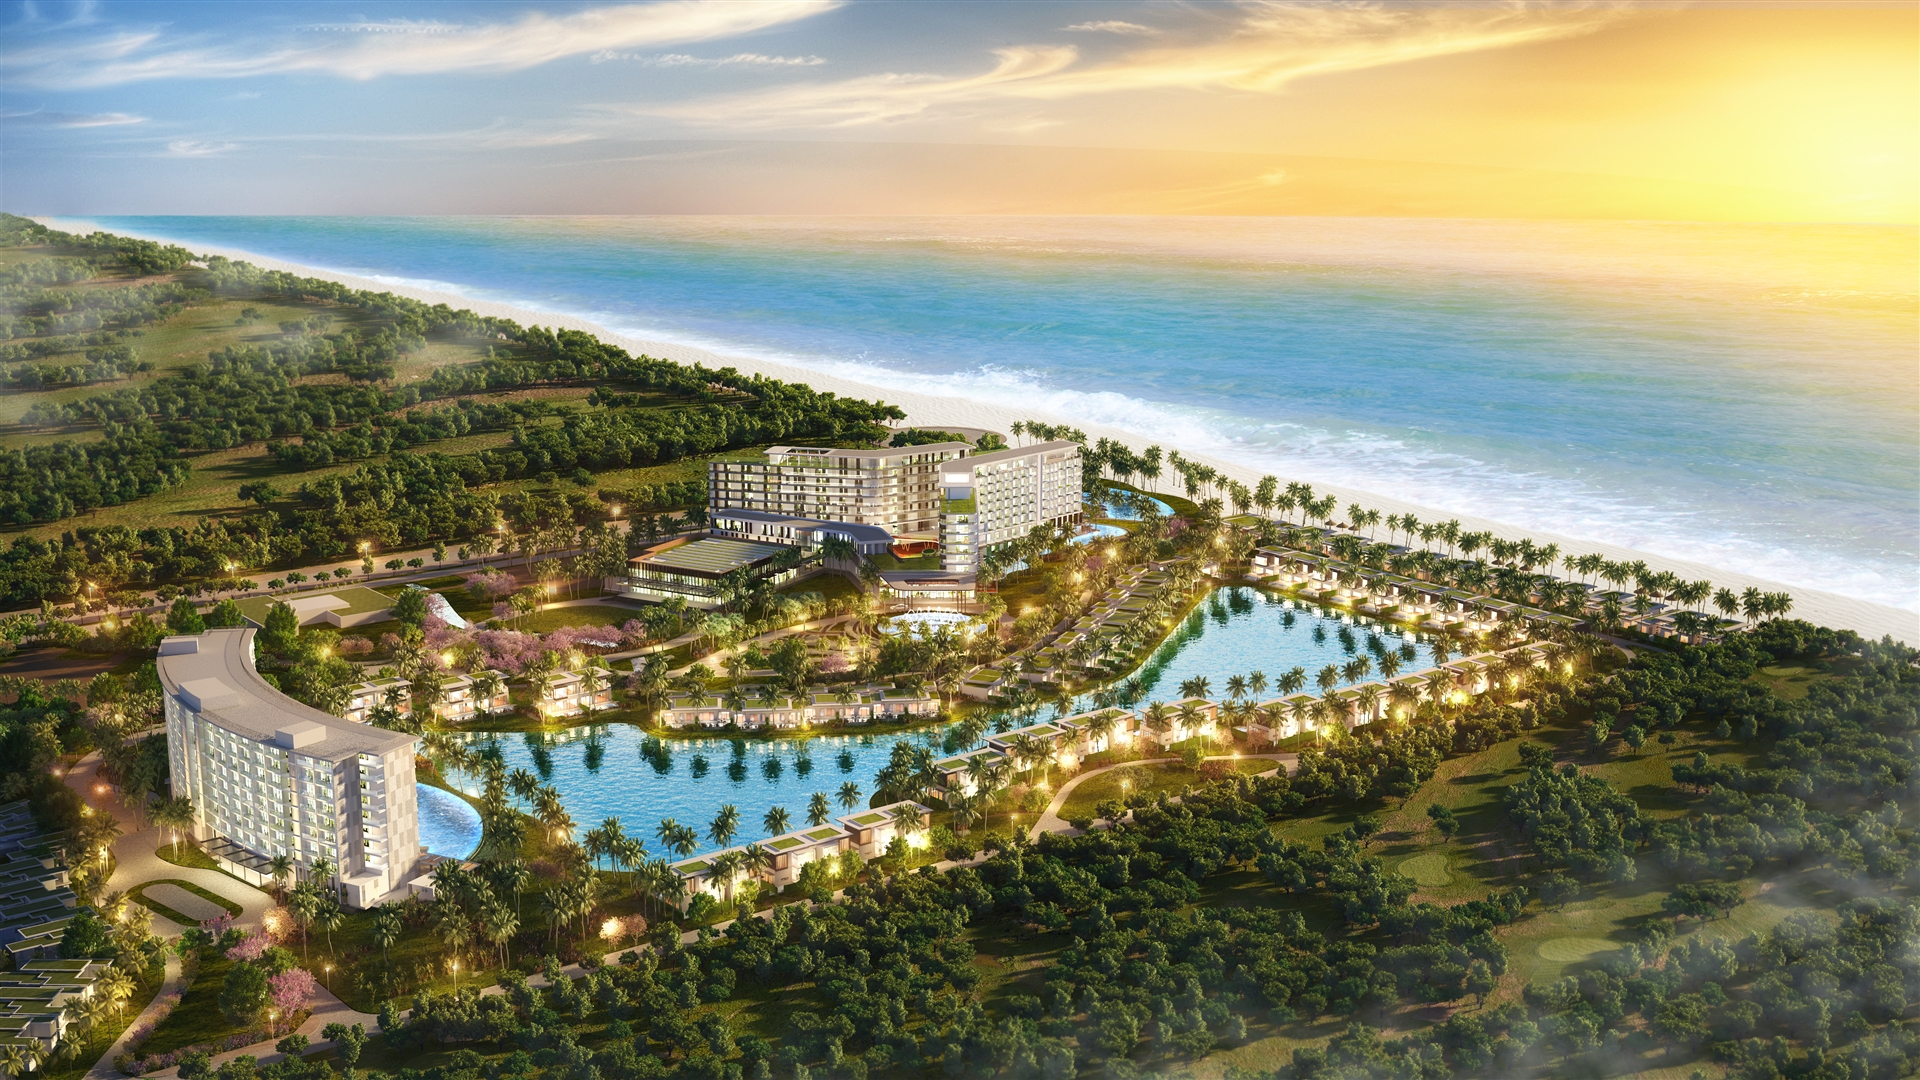 THE BEST BEACHFRONT DEVELOPMENT PROJECT IN SOUTHEAST ASIA: MOVENPICK RESORT WAVERLY PHU QUOC